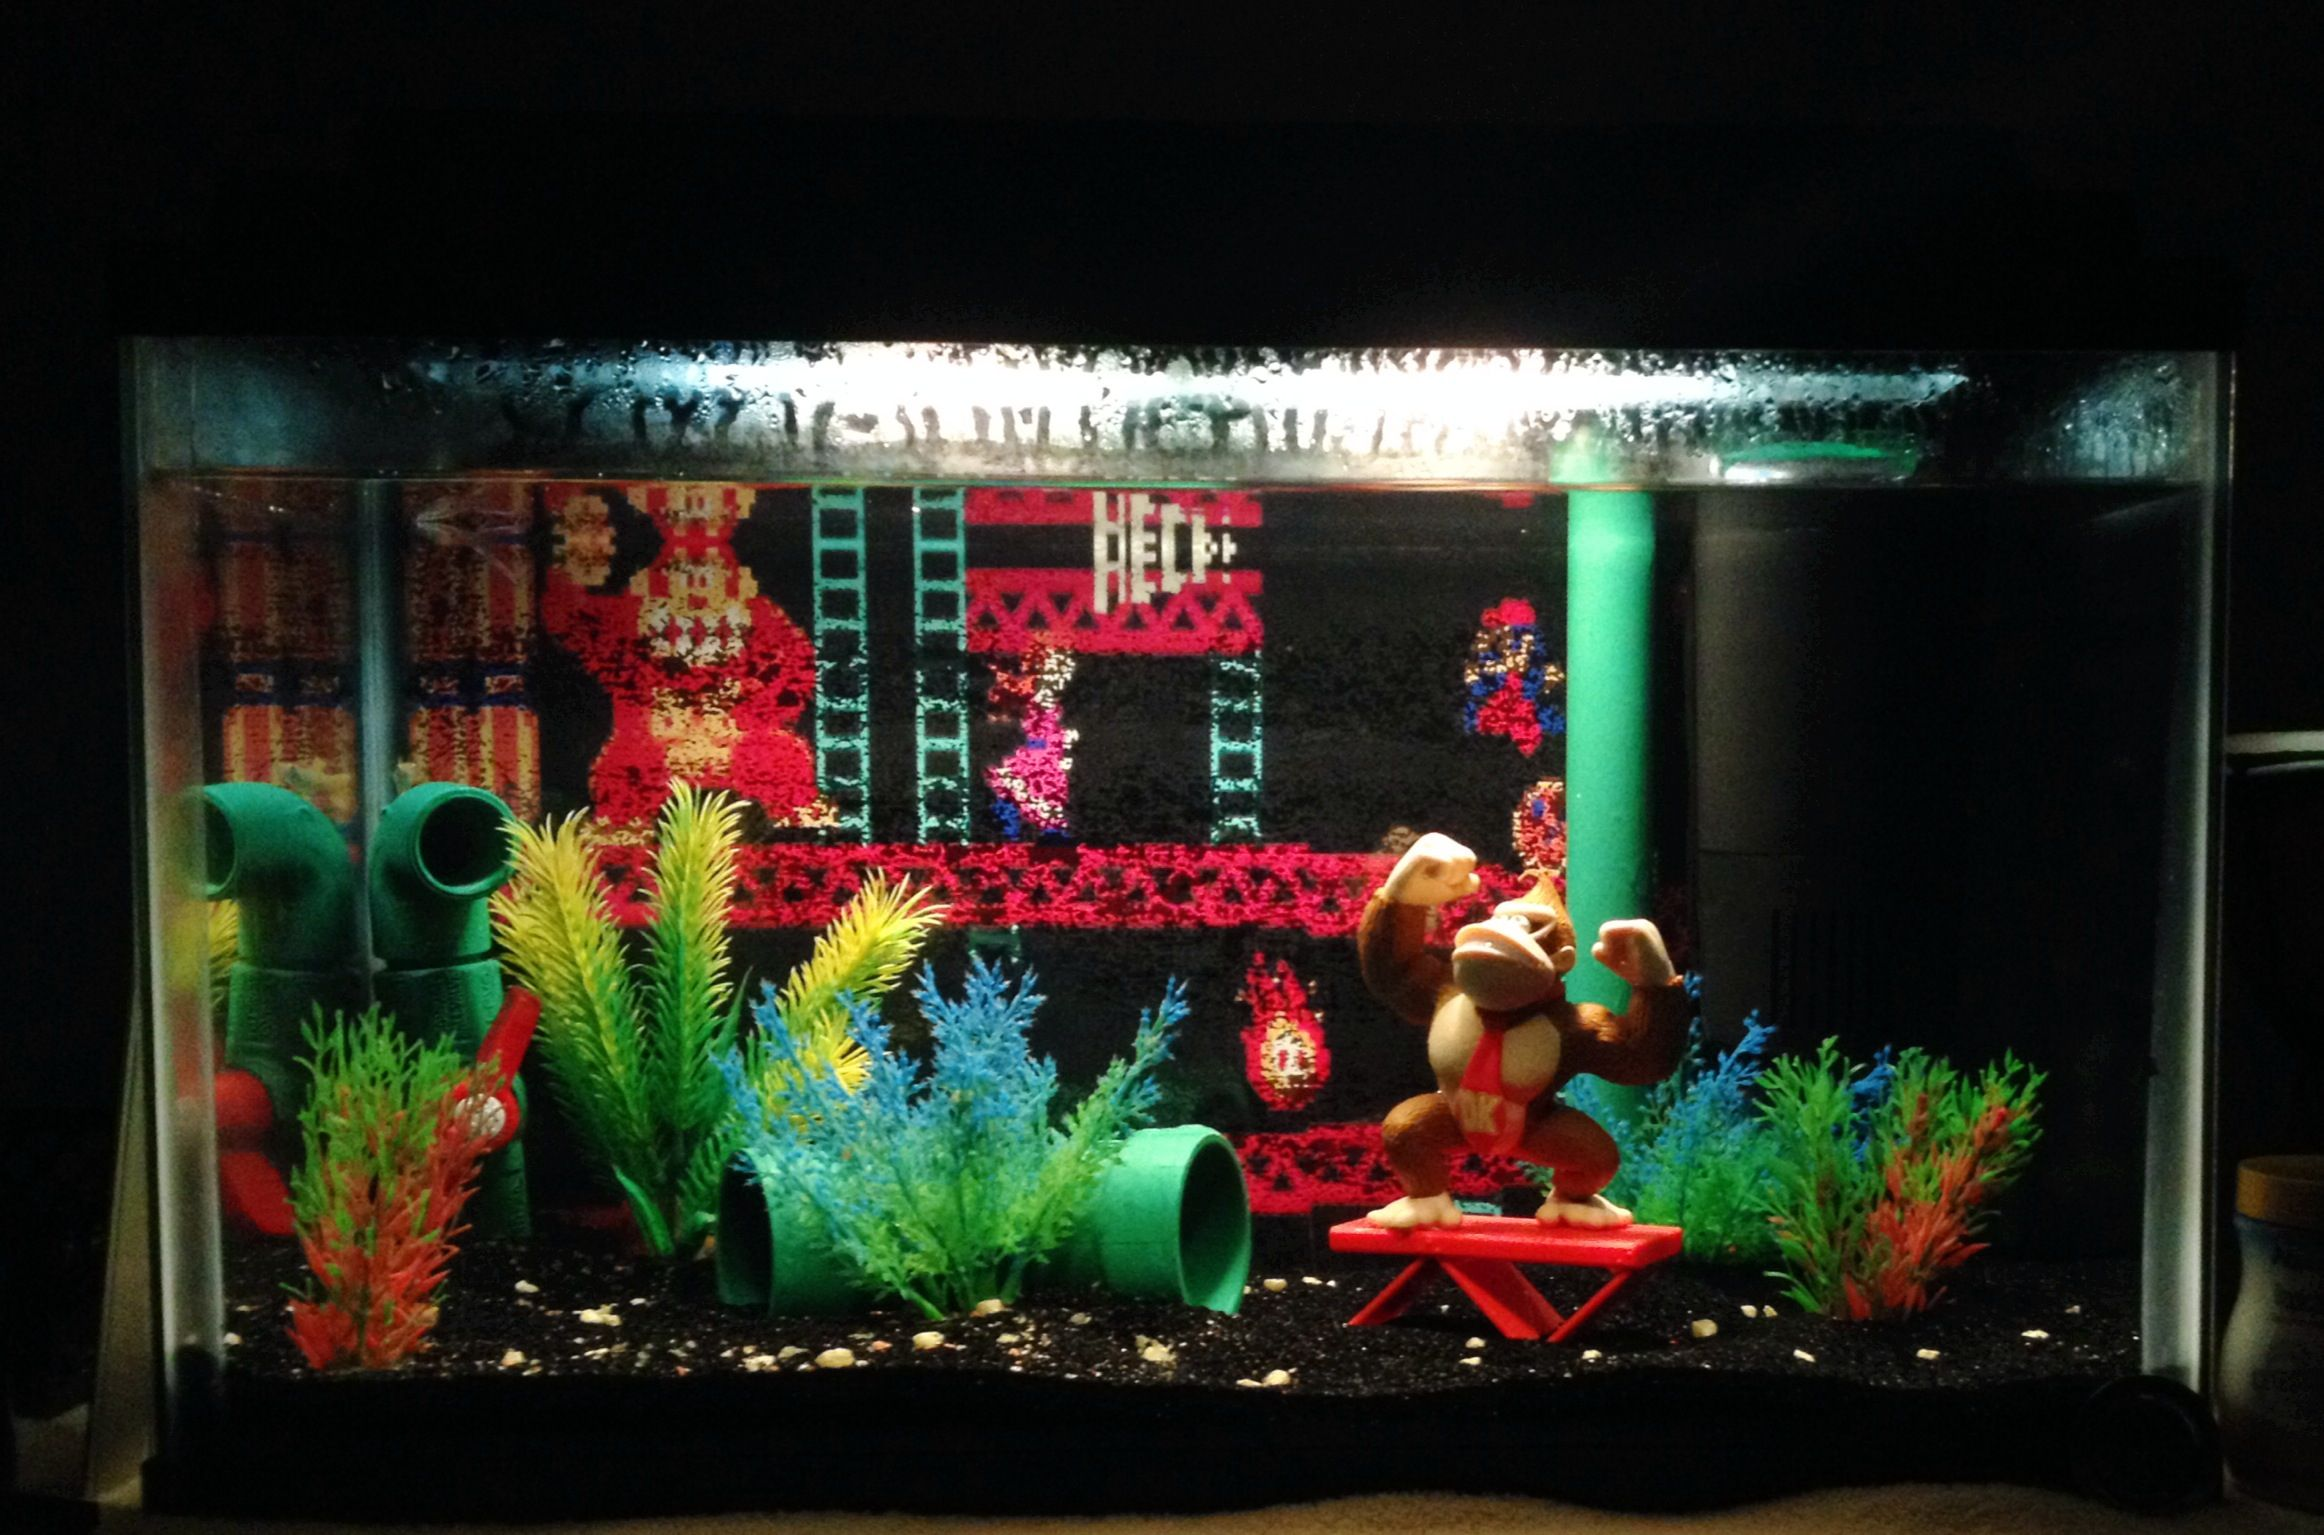 Donkey Kong arcade fish tank. Features hand painted PVC pipe and ...